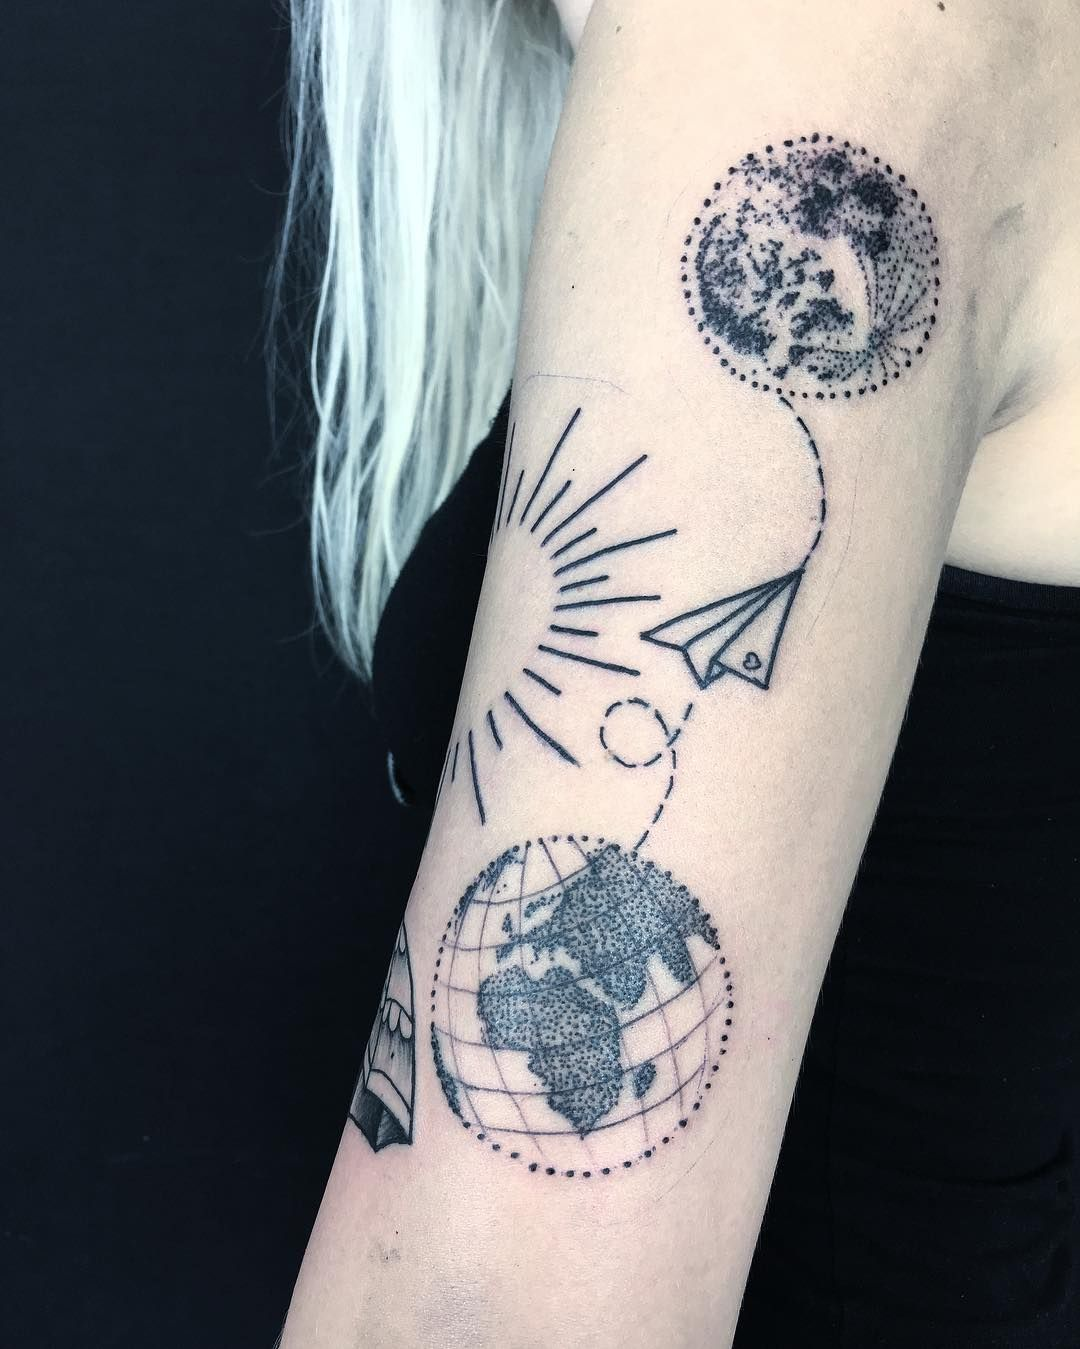 dreamy dotwork tattoos to coax out your edgy vibes just in time